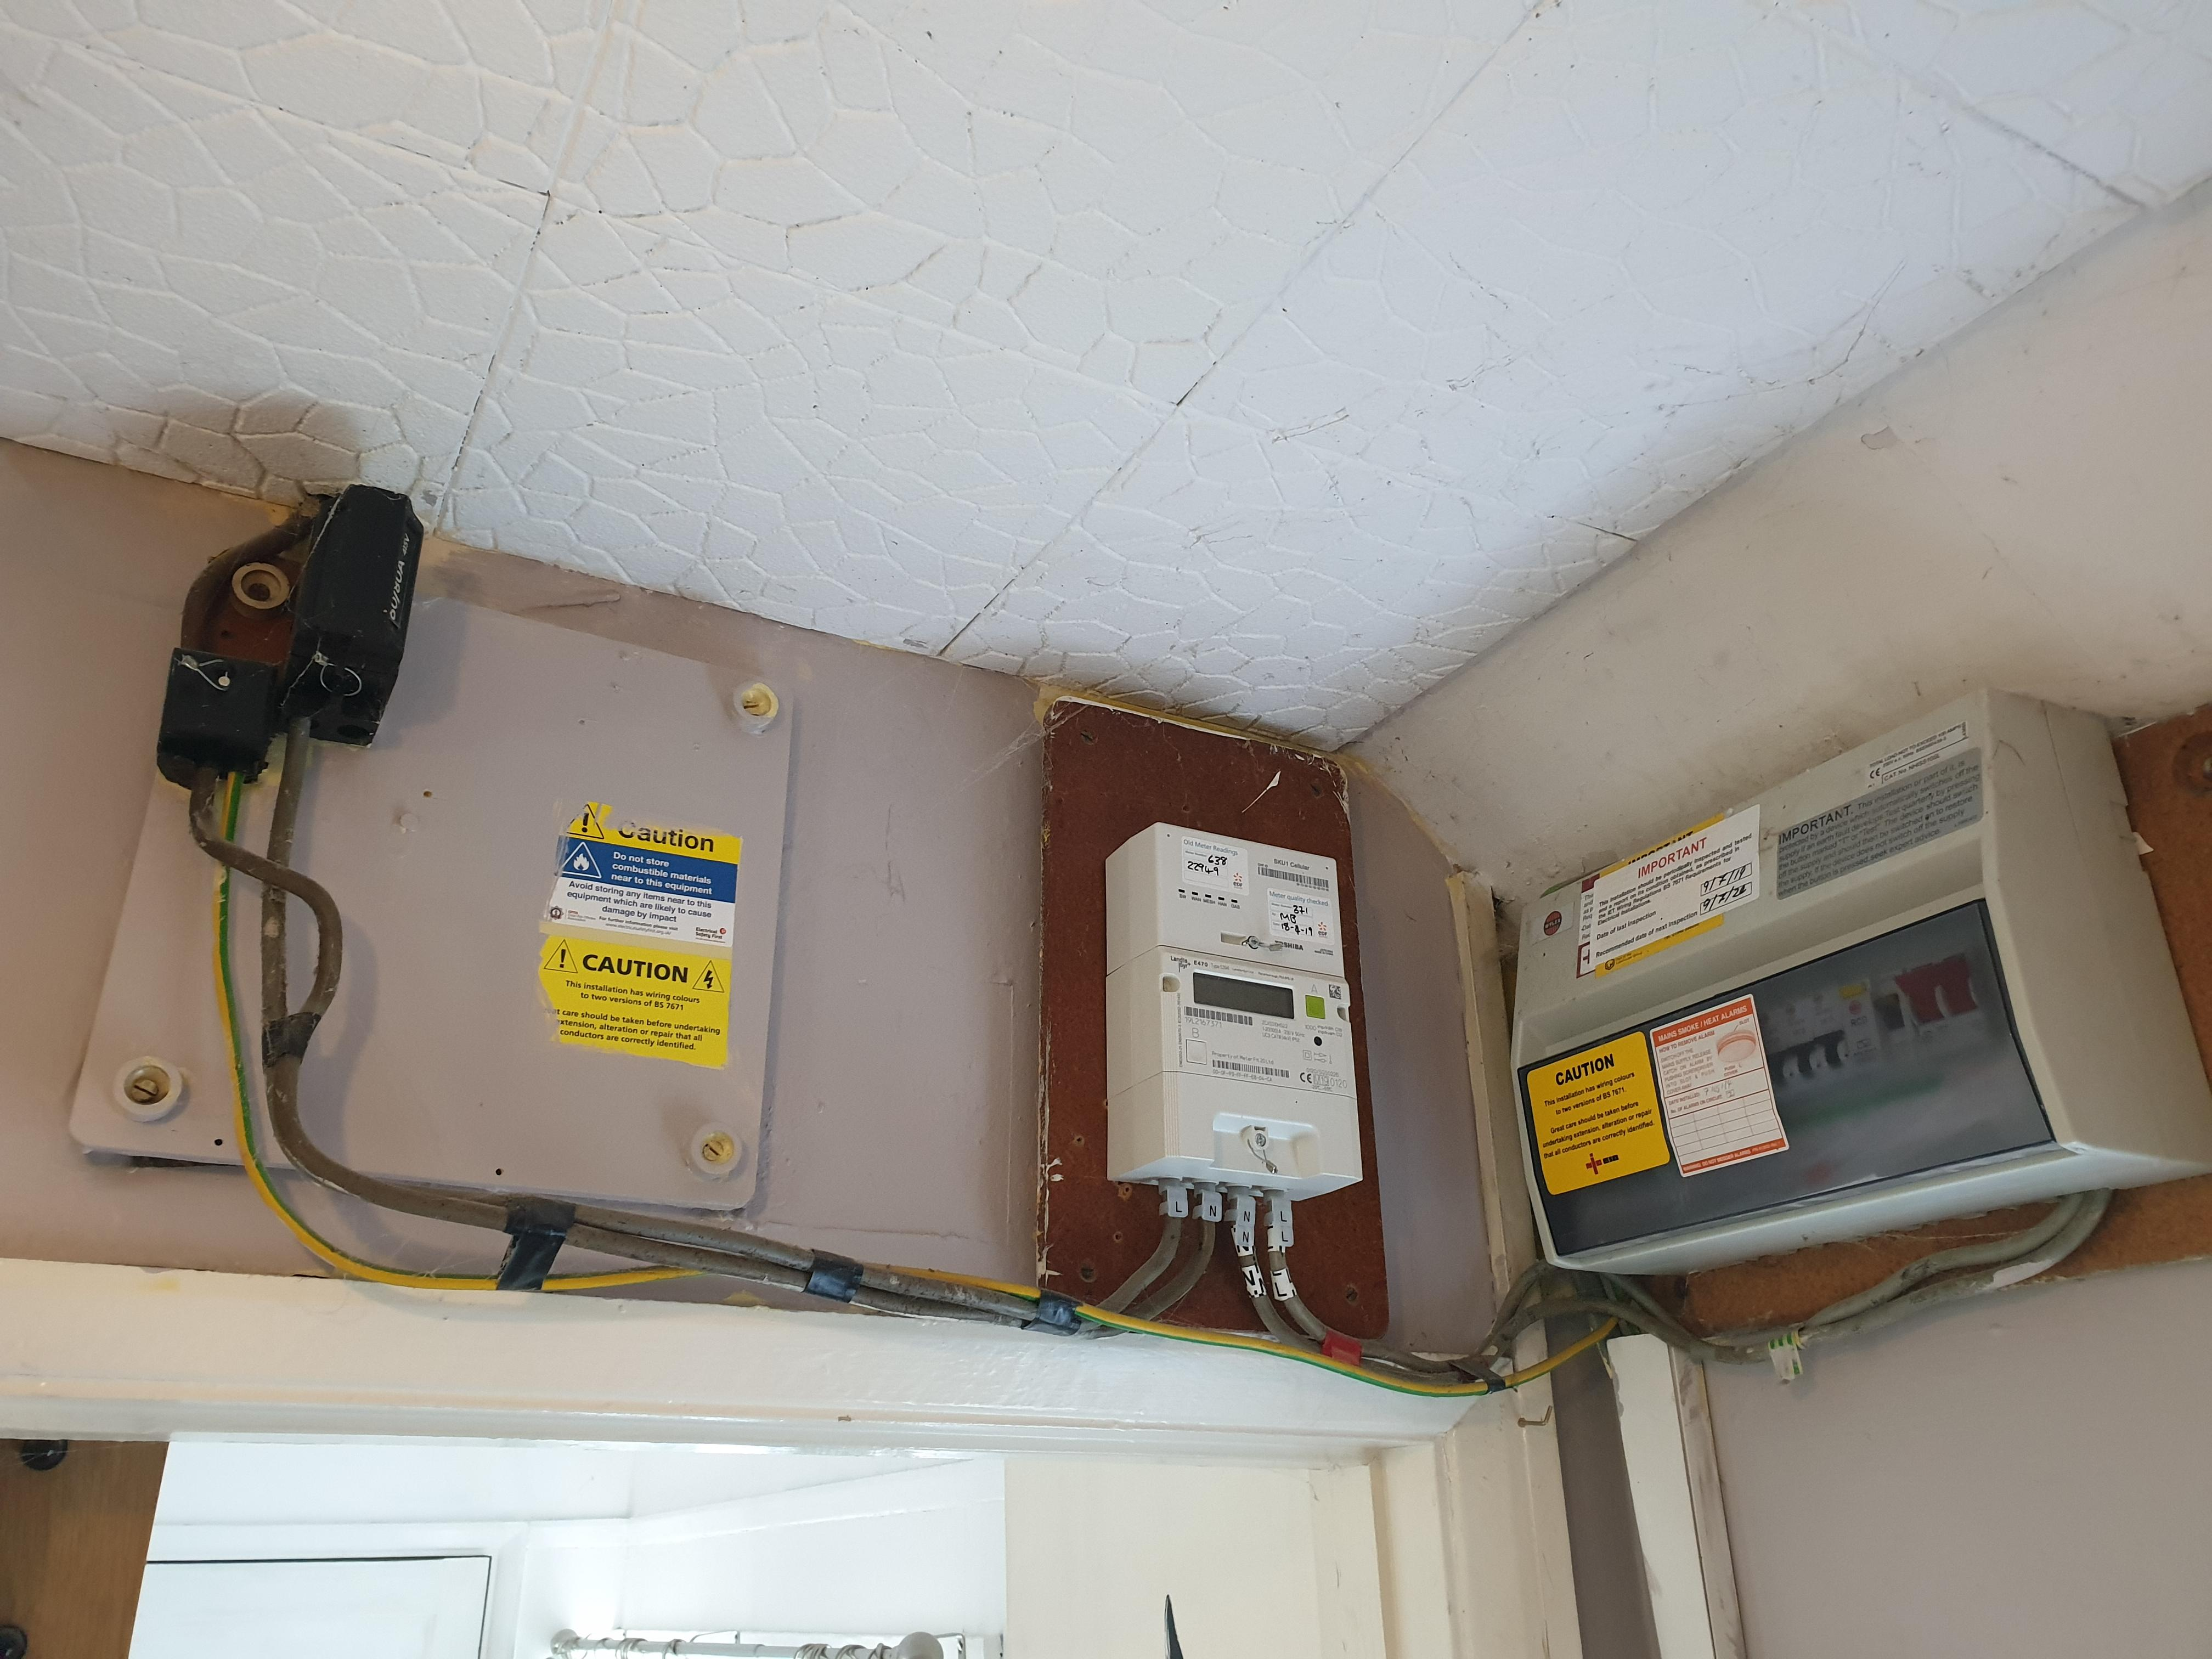 Smart meter install by edf